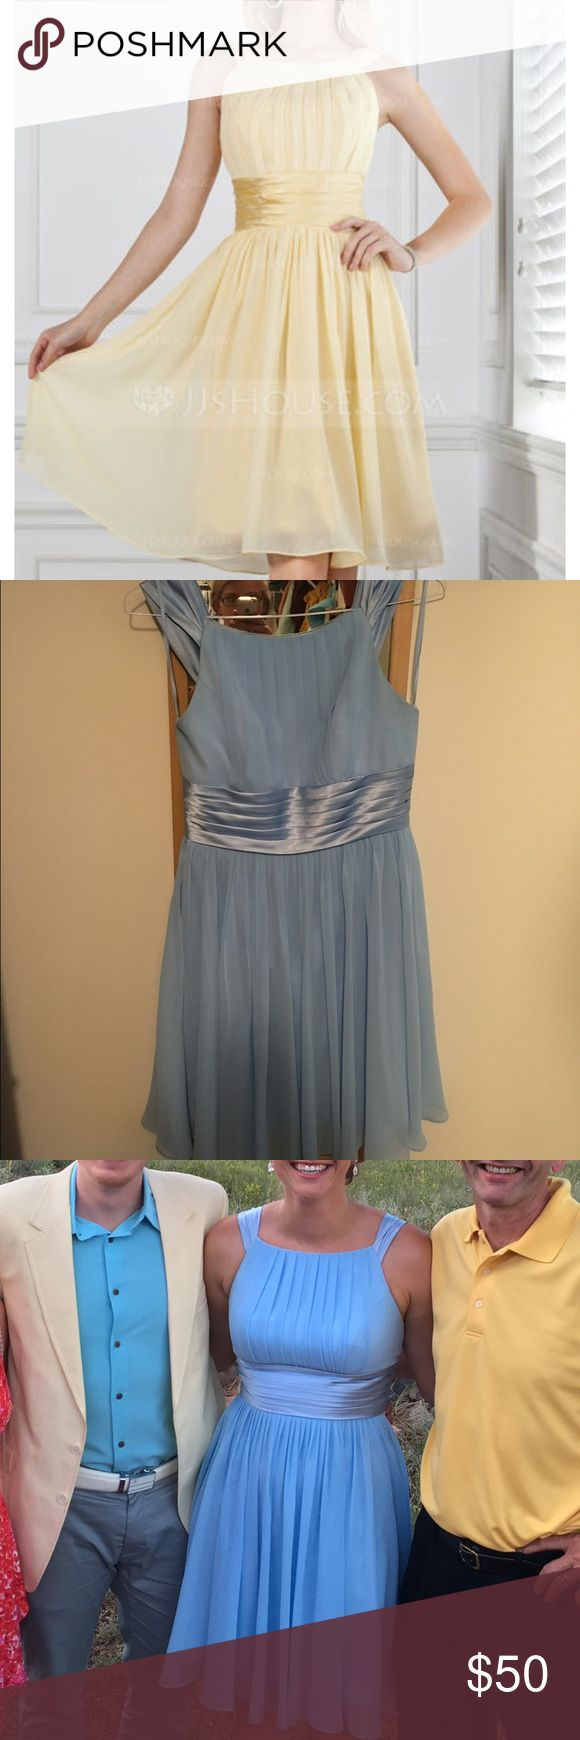 JJs House Chiffon Bridesmaid Dress A-Line/Princess Scoop Neck Knee-Length Chiffon Bridesmaid Dress With Ruffle. Only worn once. Really comfortable! Size 12. Color is Sky Blue. http://m.jjshouse.com/A-line-Princess-Scoop-Neck-Knee-length-Chiffon-Bridesmaid-Dress-With-Ruffle-007004142-g4142 JJs House Dresses Wedding